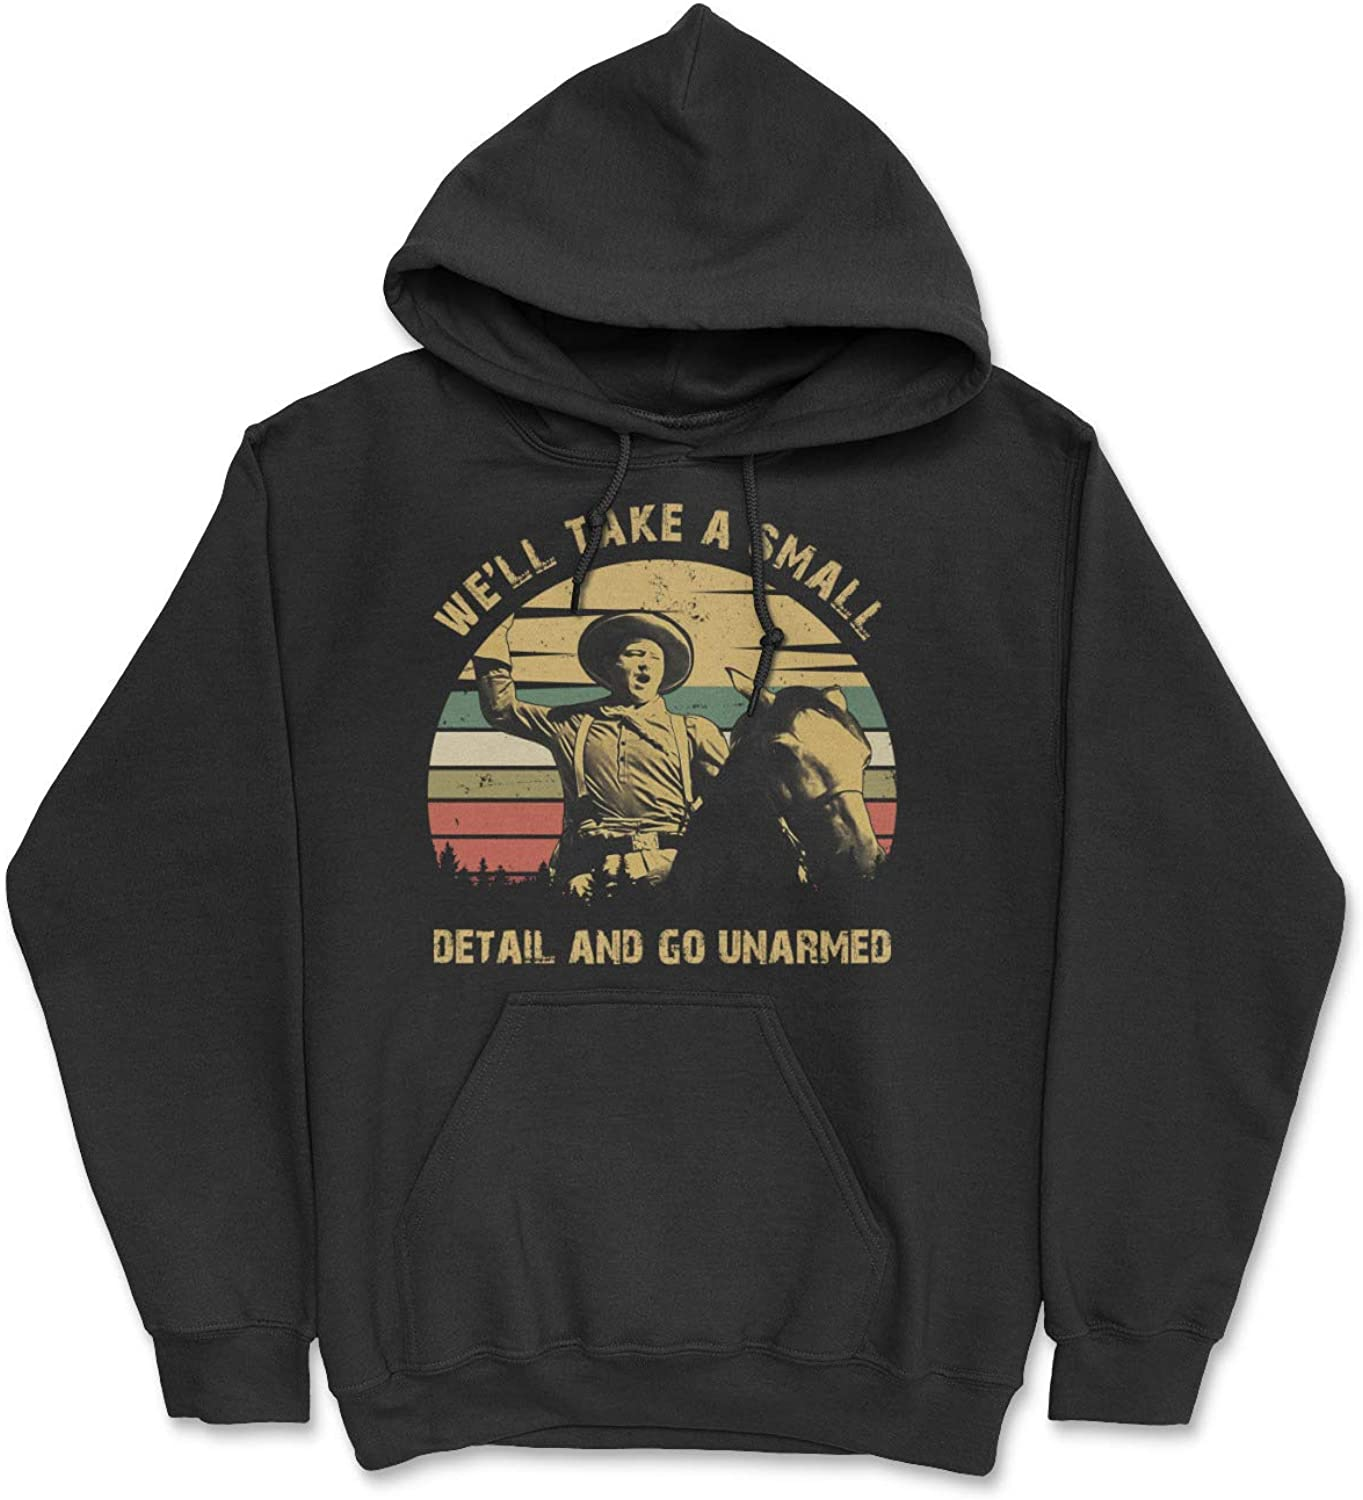 Well Take A Small Detail and Go Unarmed Vintage T-Shirt